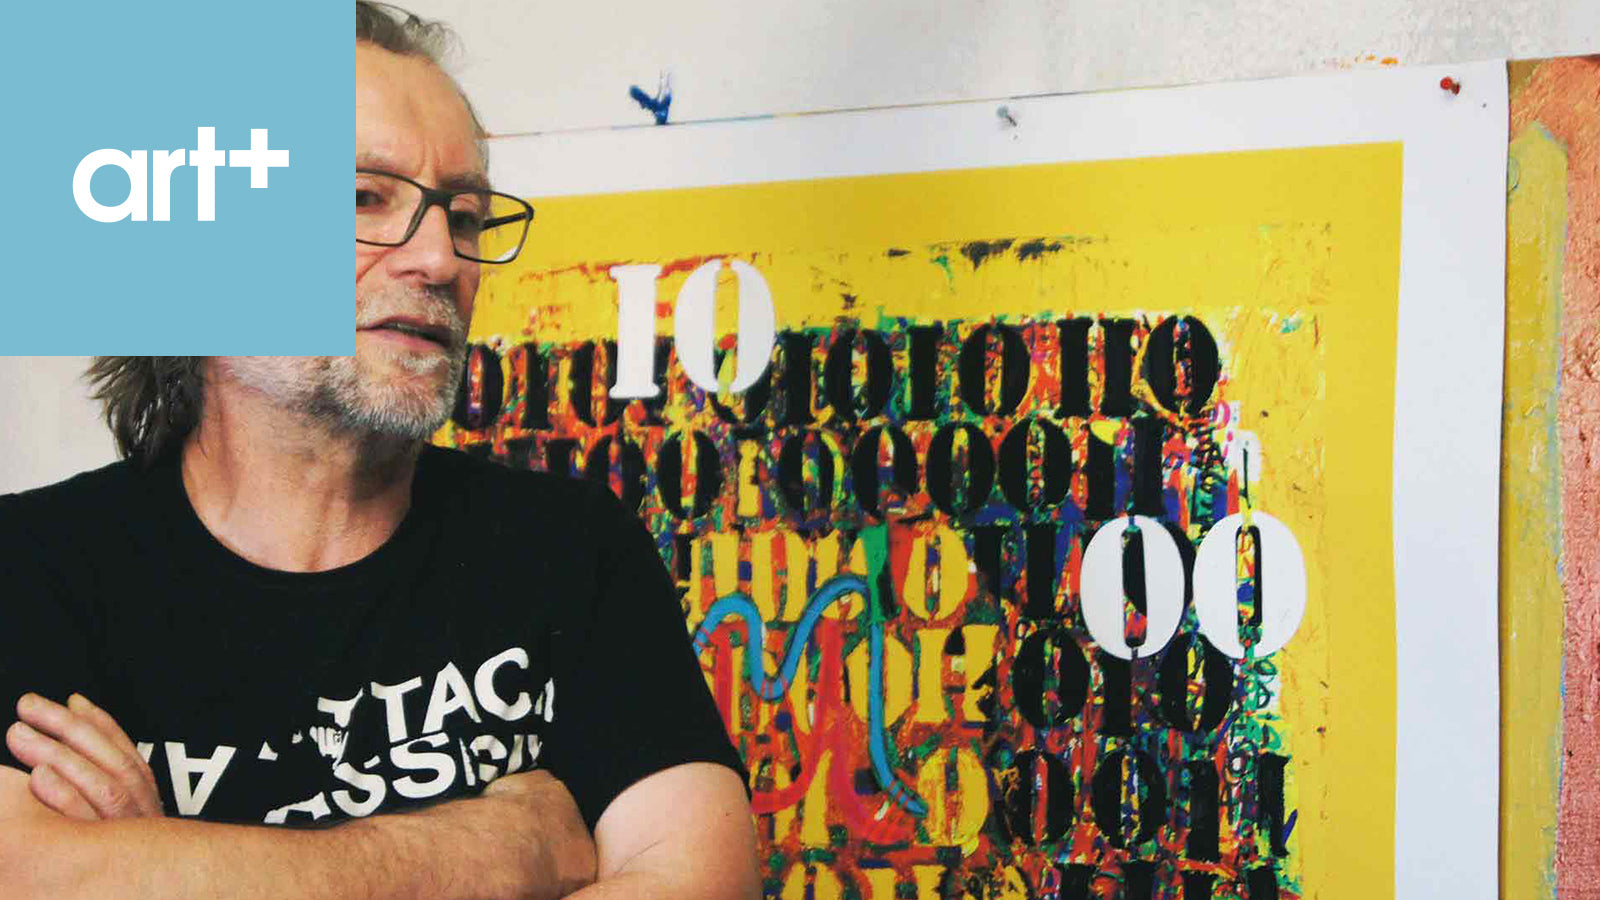 Thierry miquel artist interview